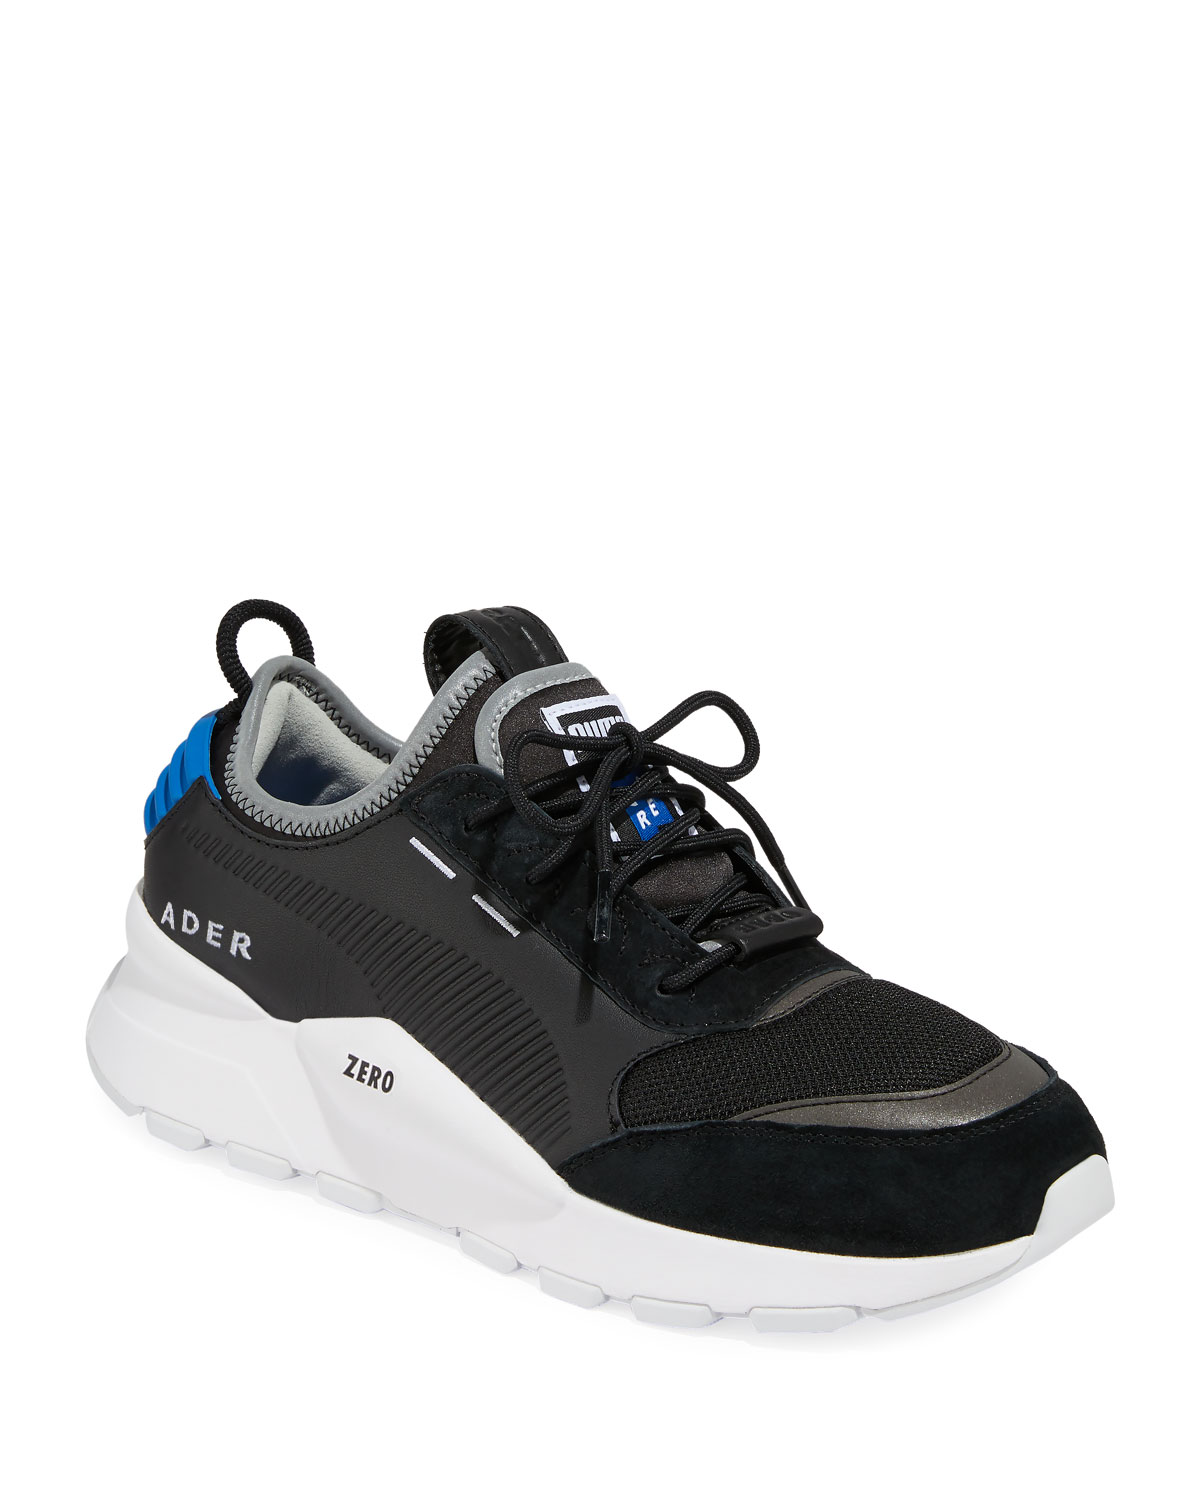 Trainer Ader Sneakers Error Men's Leather vO8nmwN0